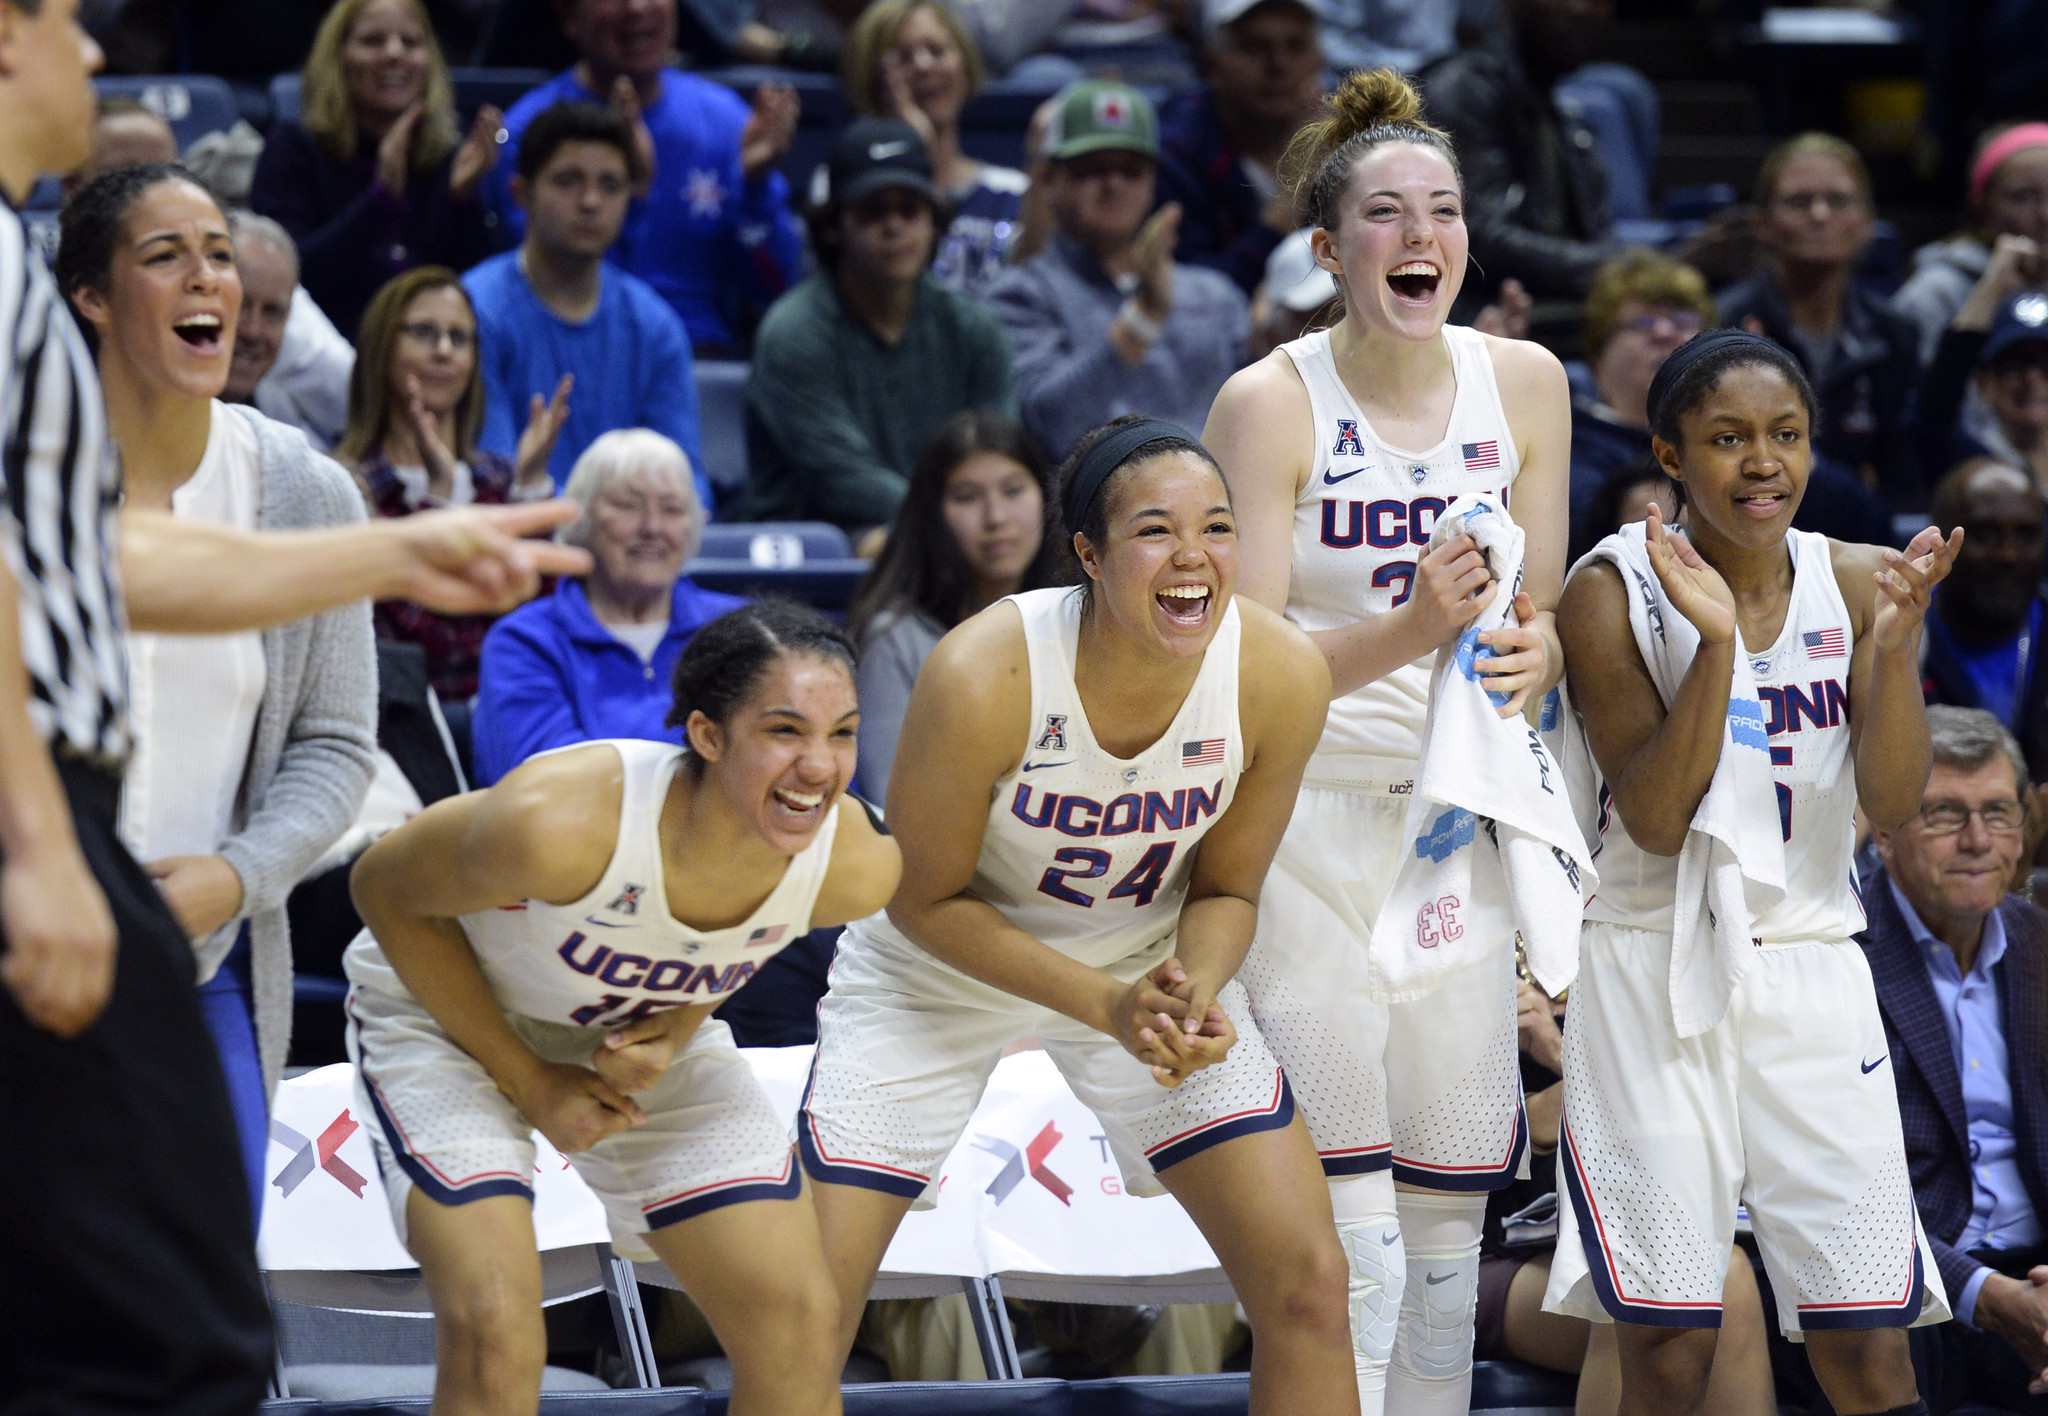 hbo series on uconn women debuts wednesday night - daily press